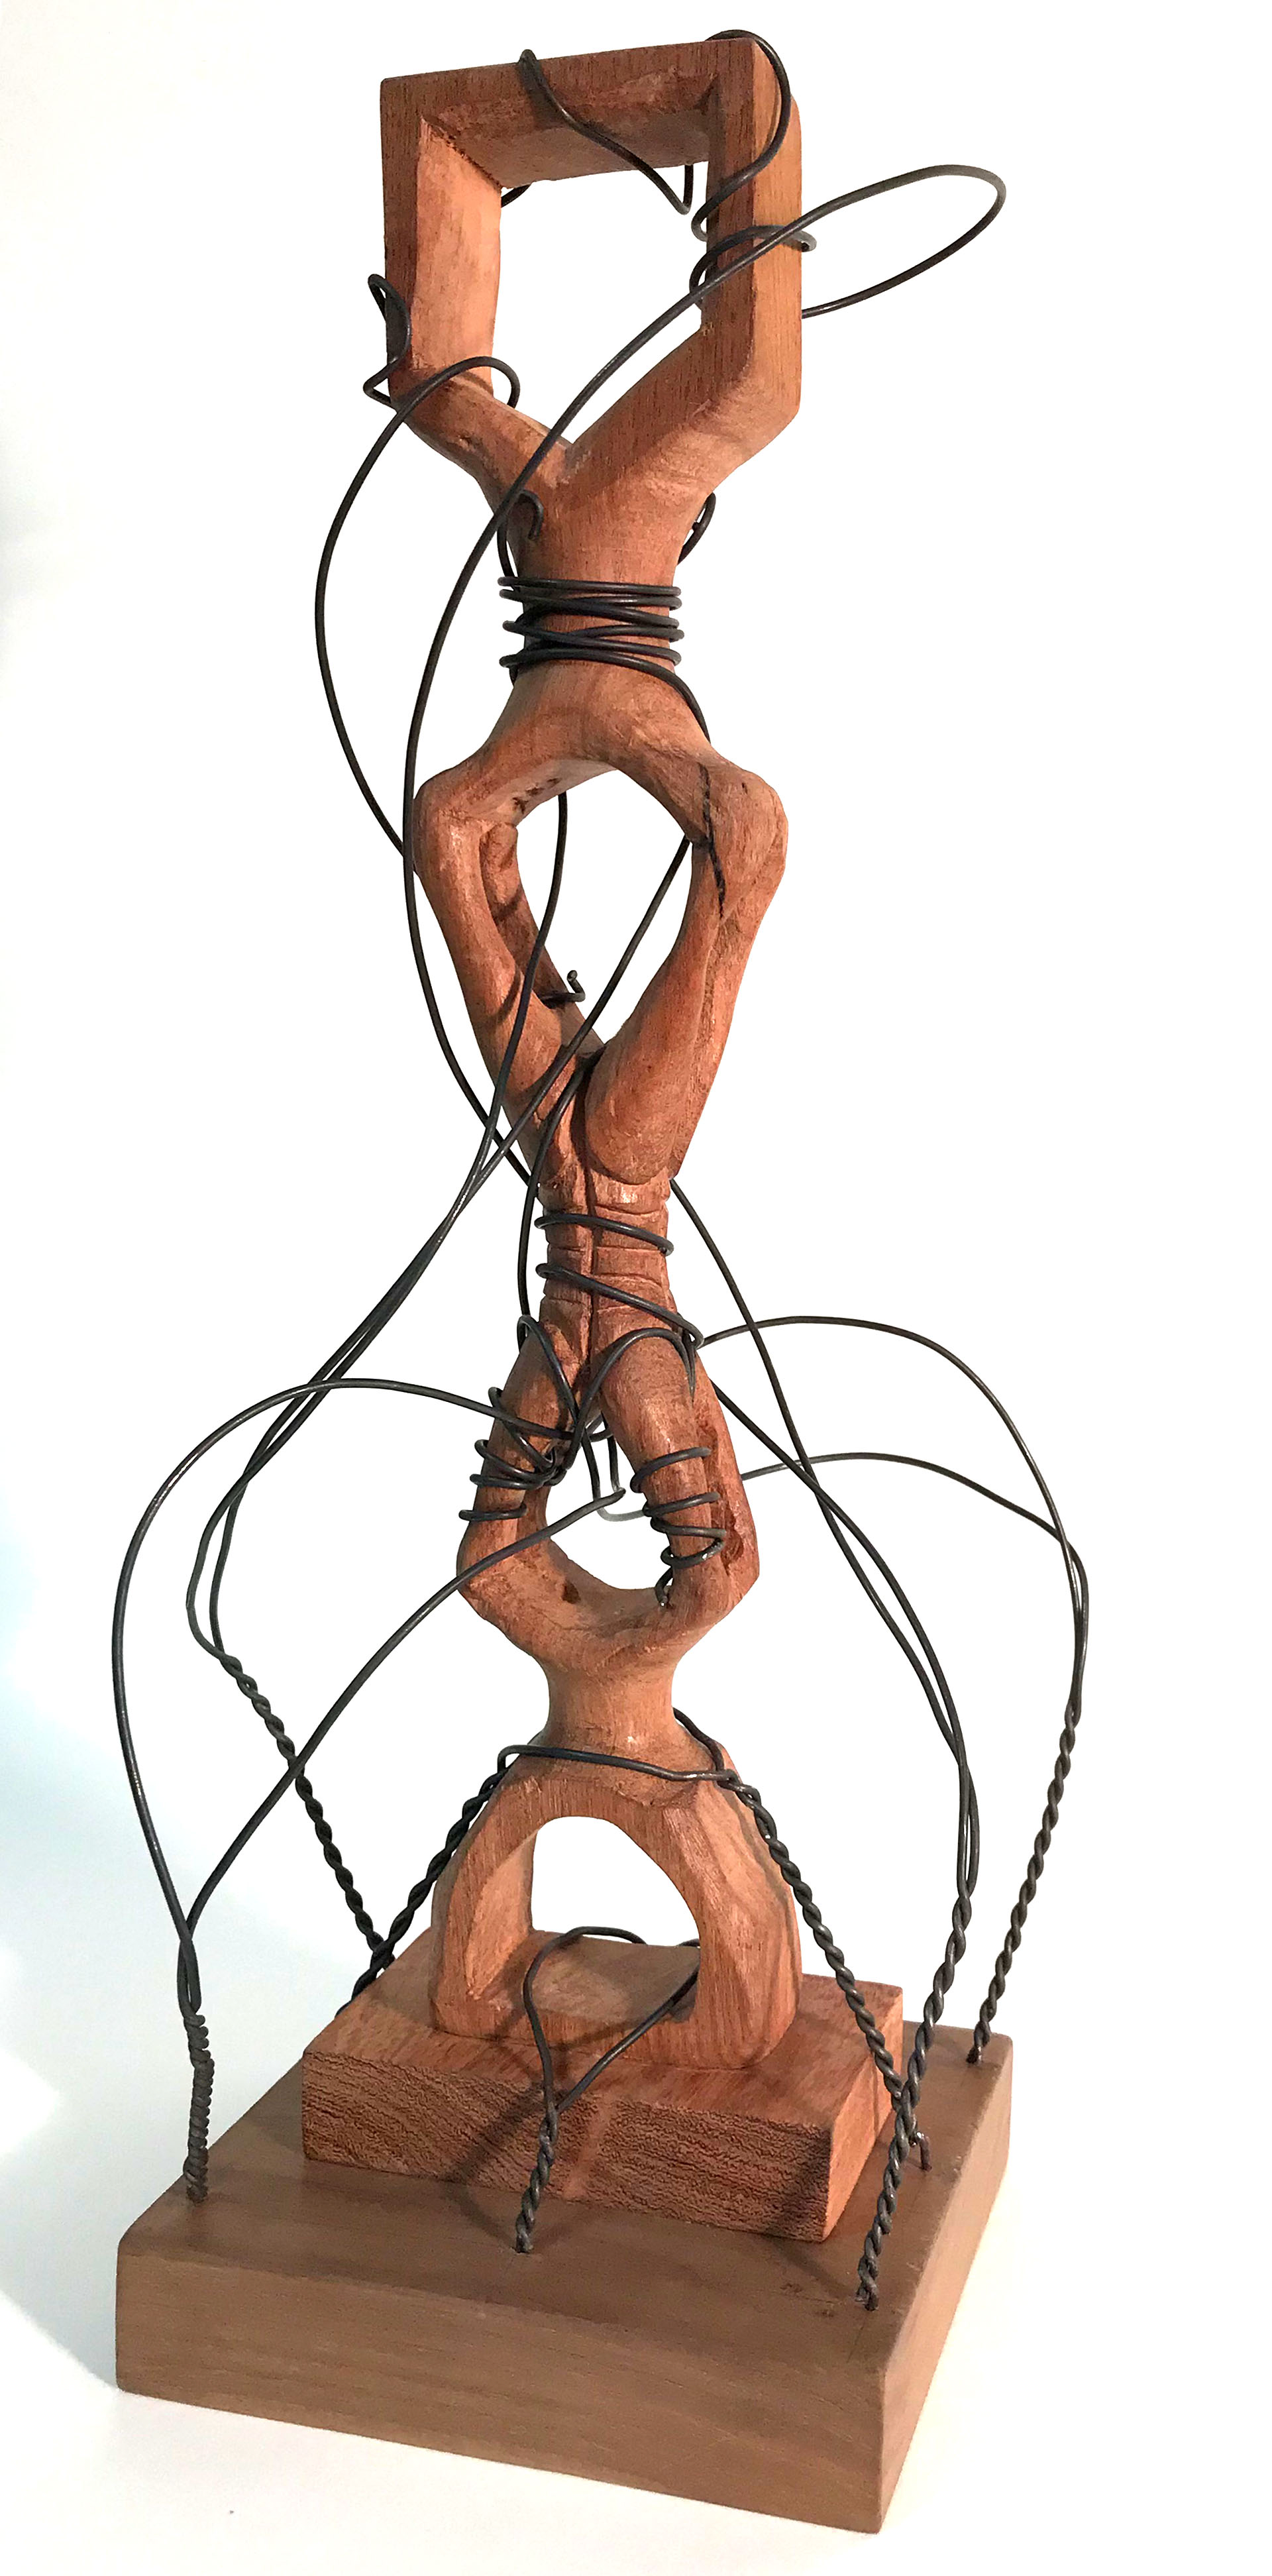 Art: wooden sculpture with wires stretching over it